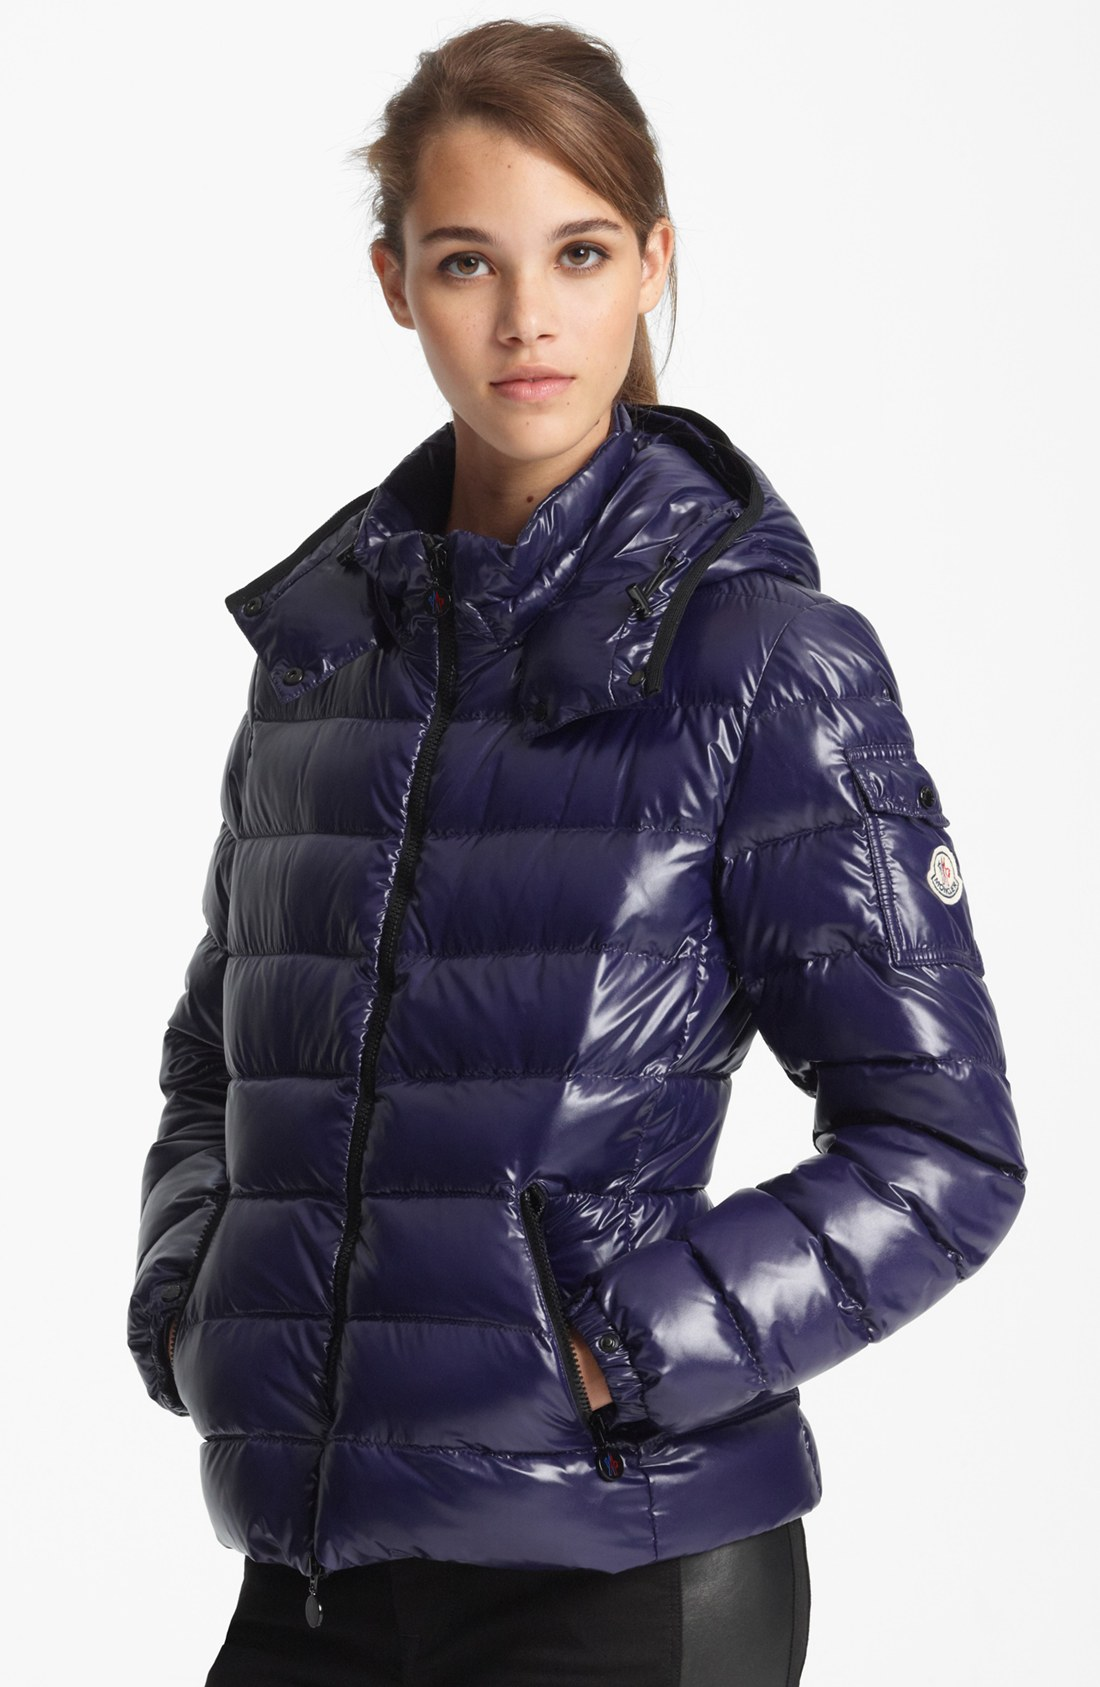 863c9735d reduced moncler bady jacket 9450c 74557